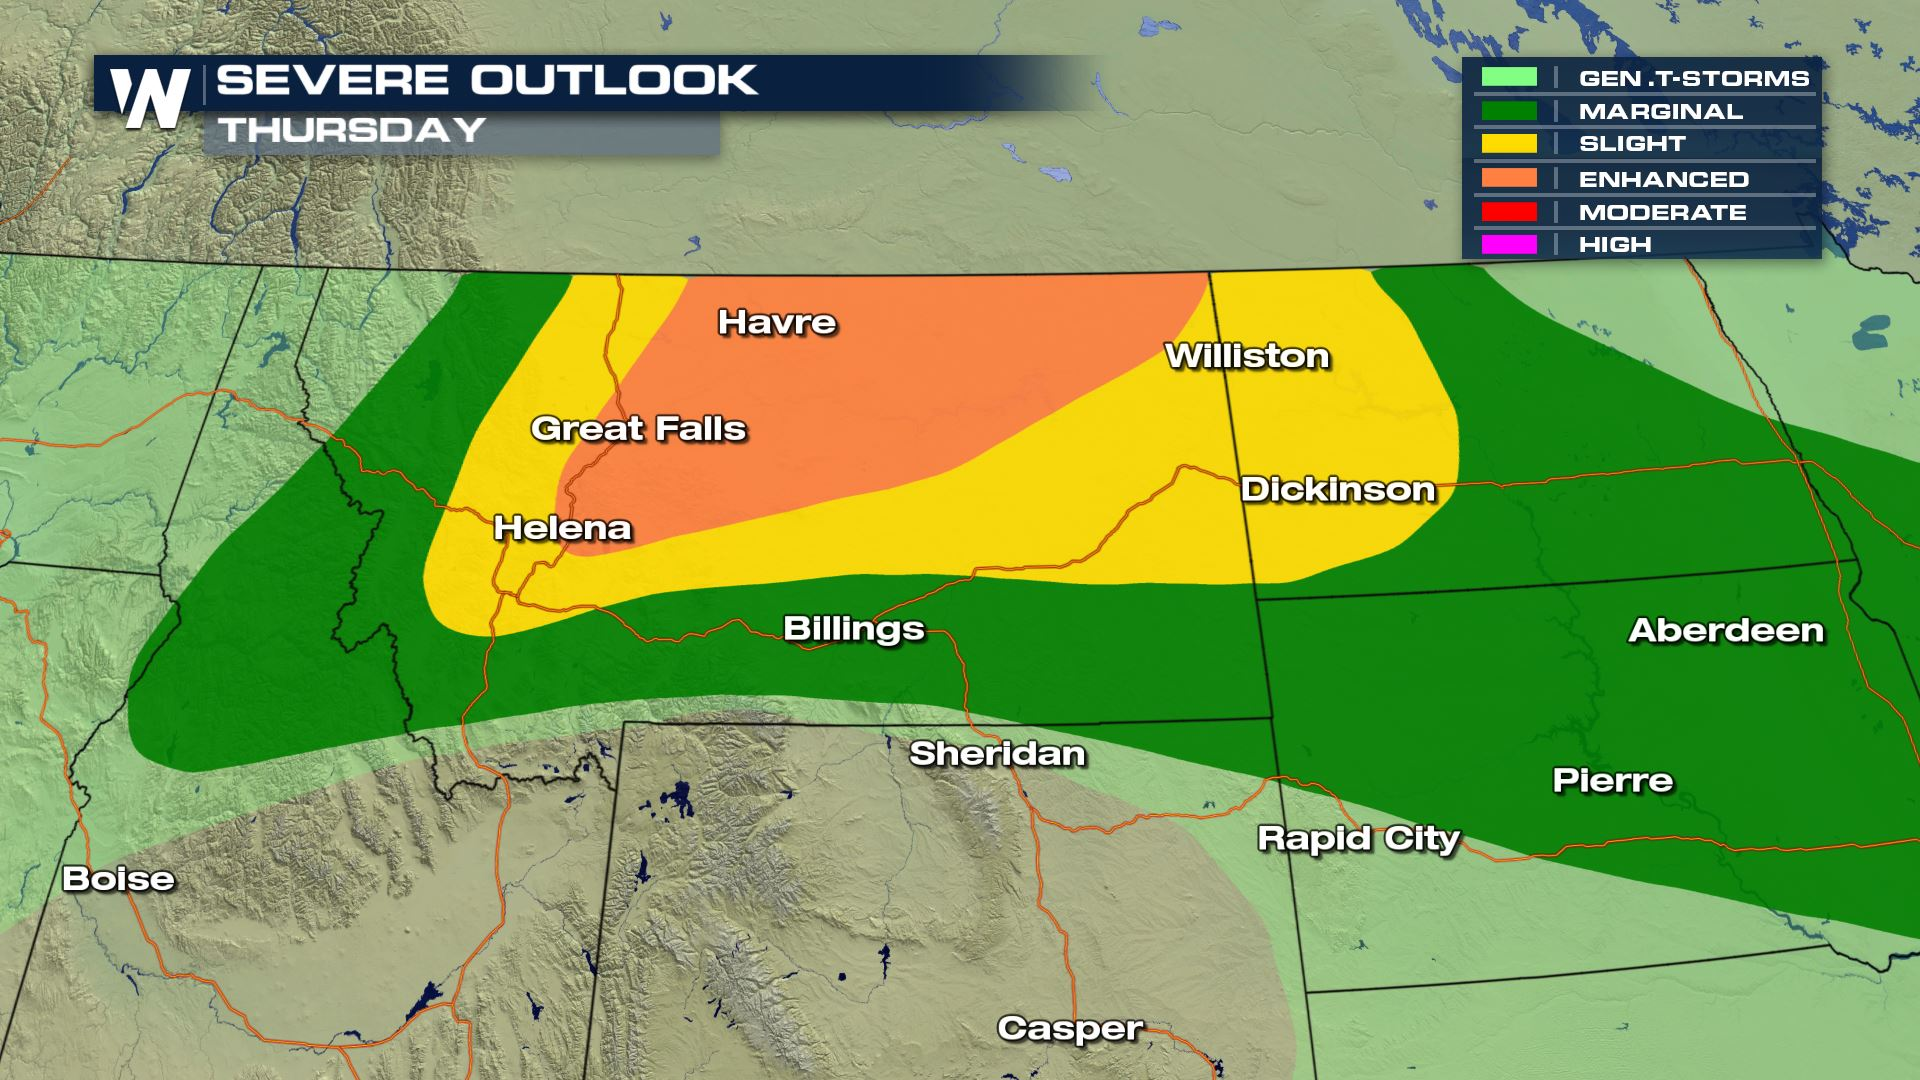 Tornadoes in the Forecast for Montana Thursday - WeatherNation